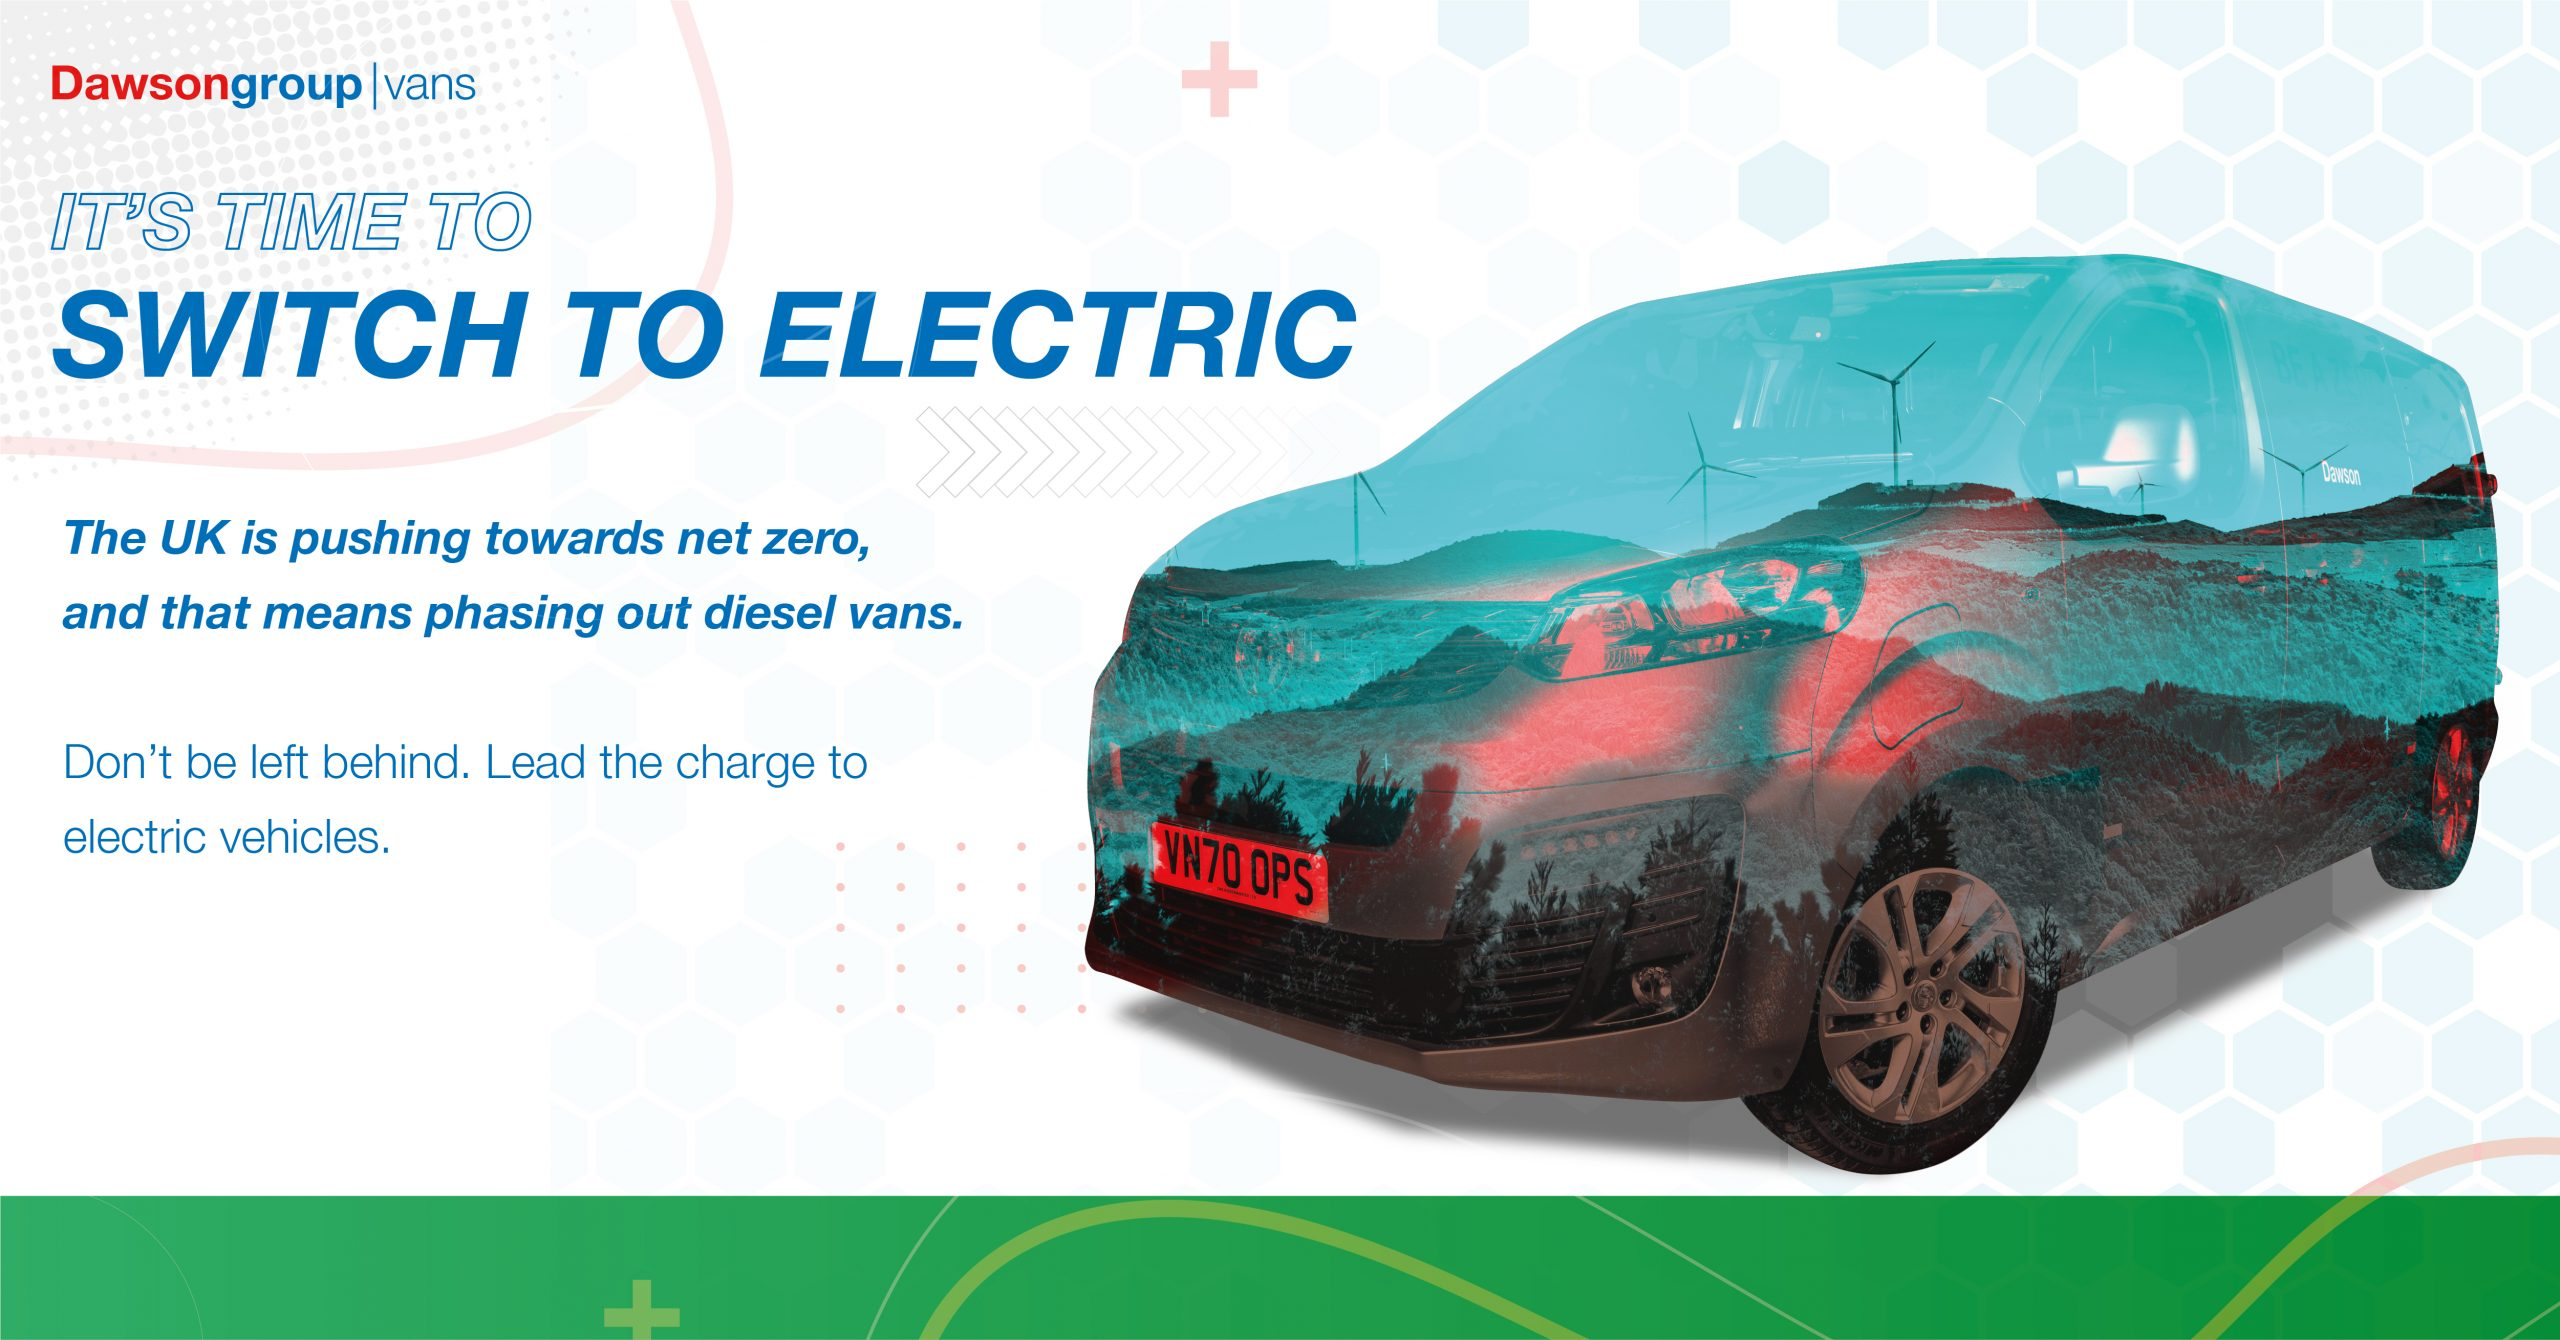 It's time to switch to electric